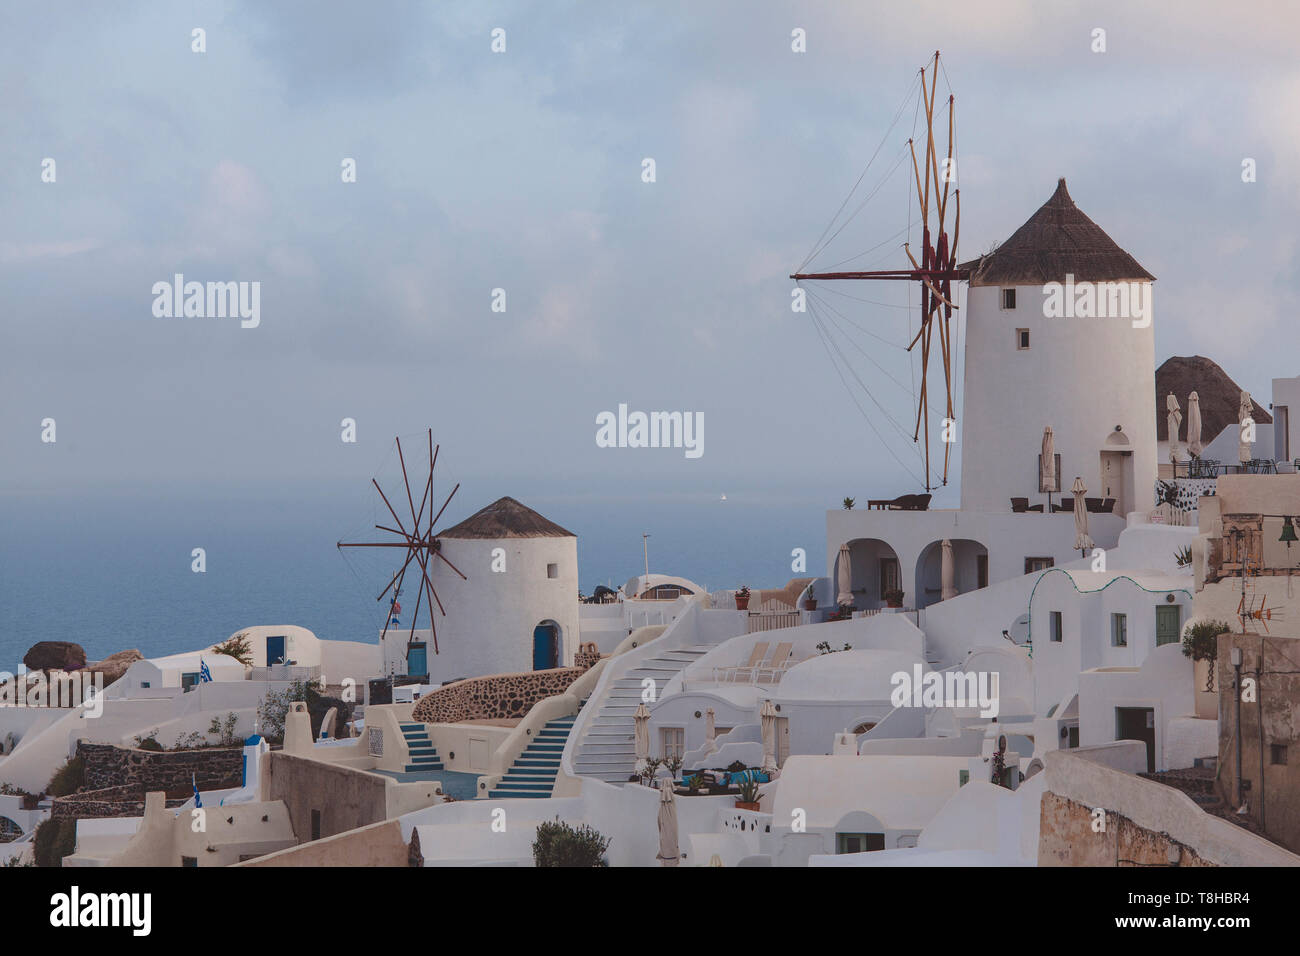 view of the city of Oia, santorini, greece, detail of the mills and the city with typical white buildings, background sea. - Stock Image